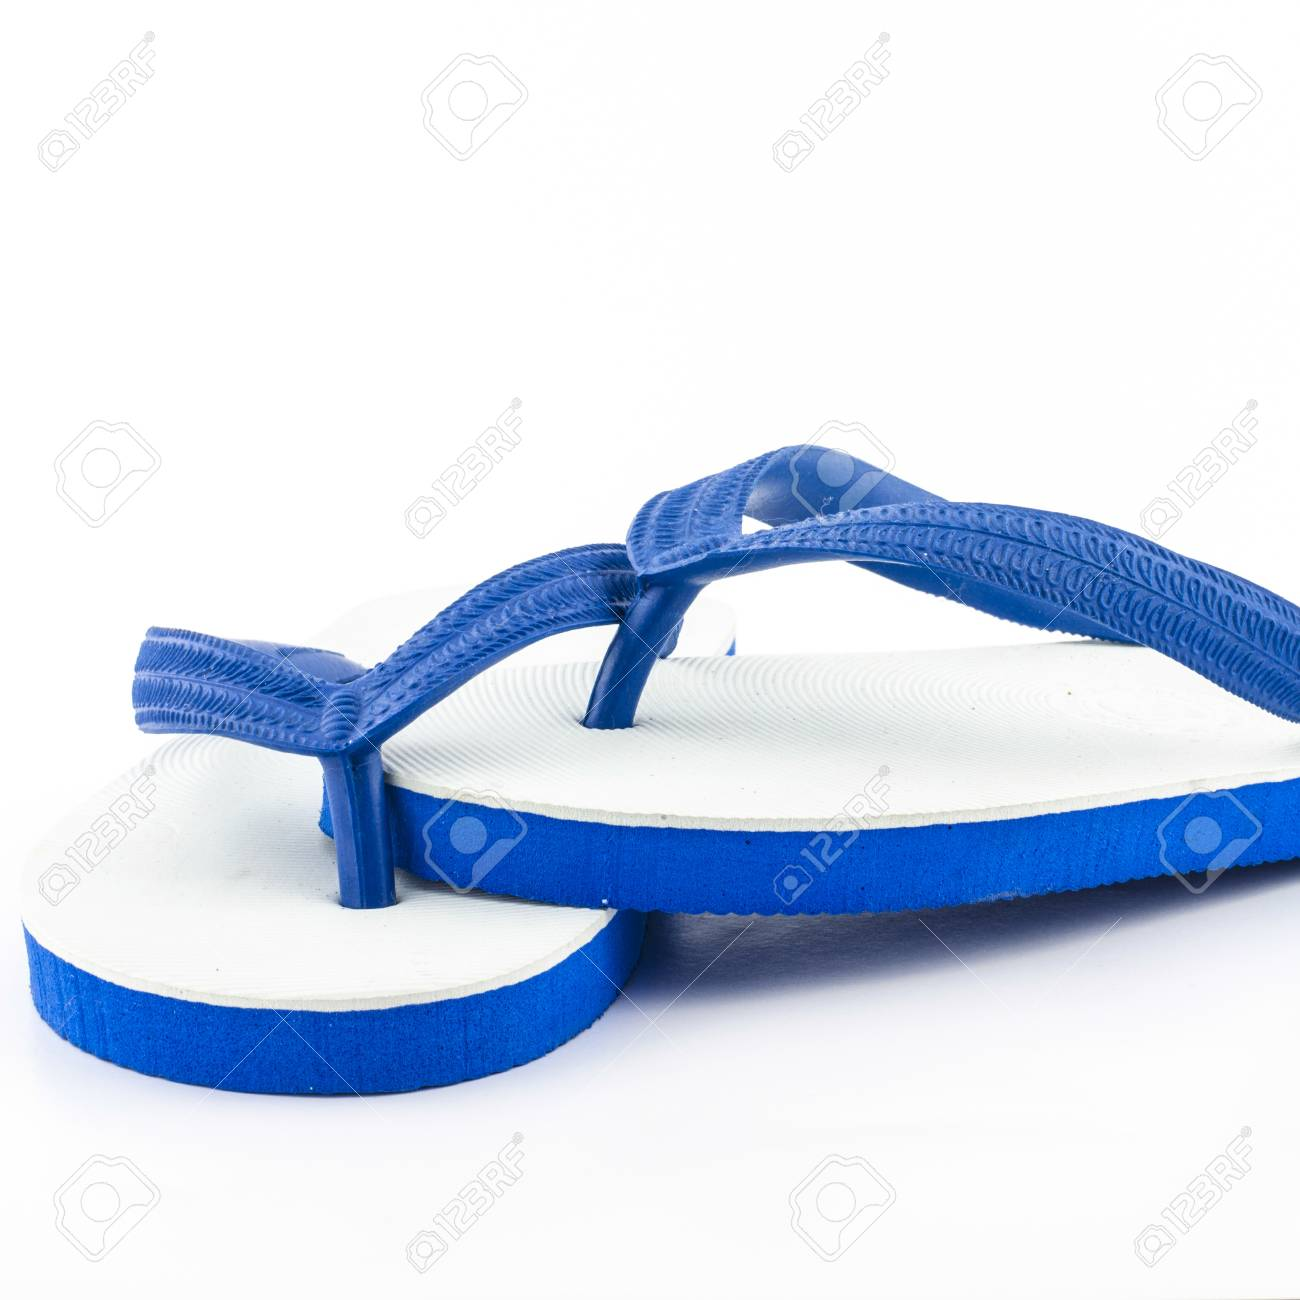 f62e7f4cd White Blue Slippers Isolated On White Background Stock Photo ...